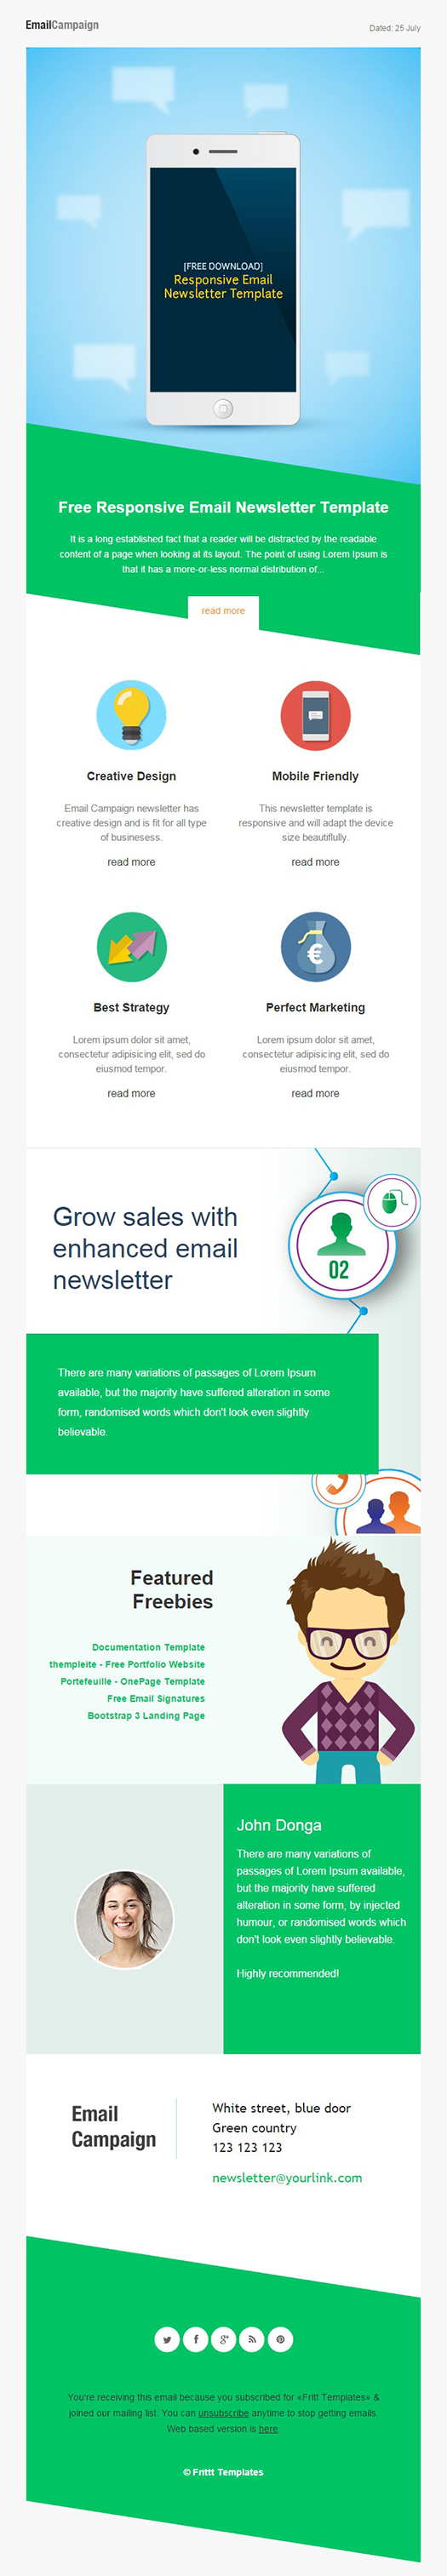 Responsive Email Newsletter Template For Effective Email Marketing - Bootstrap html email templates